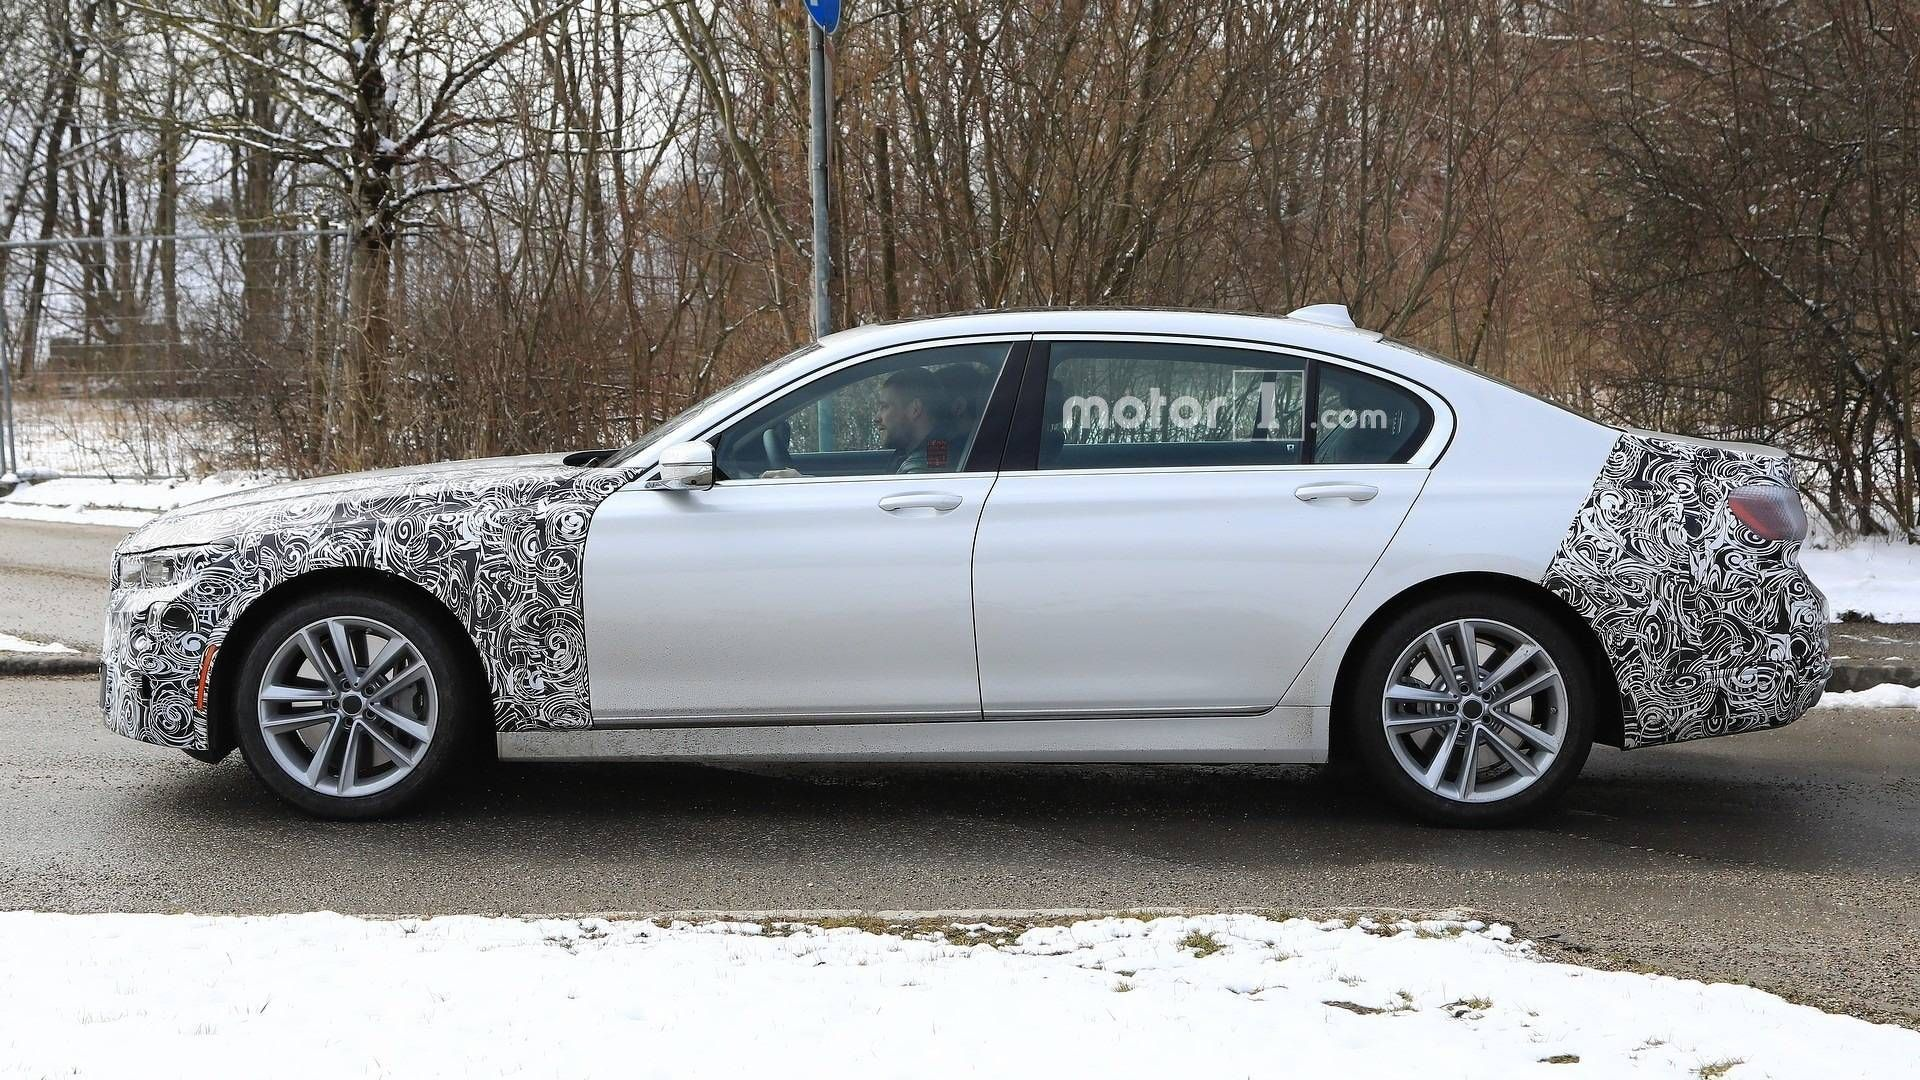 2020 Bmw 750li Spy Shoot Bmw New Cars Vw Fox